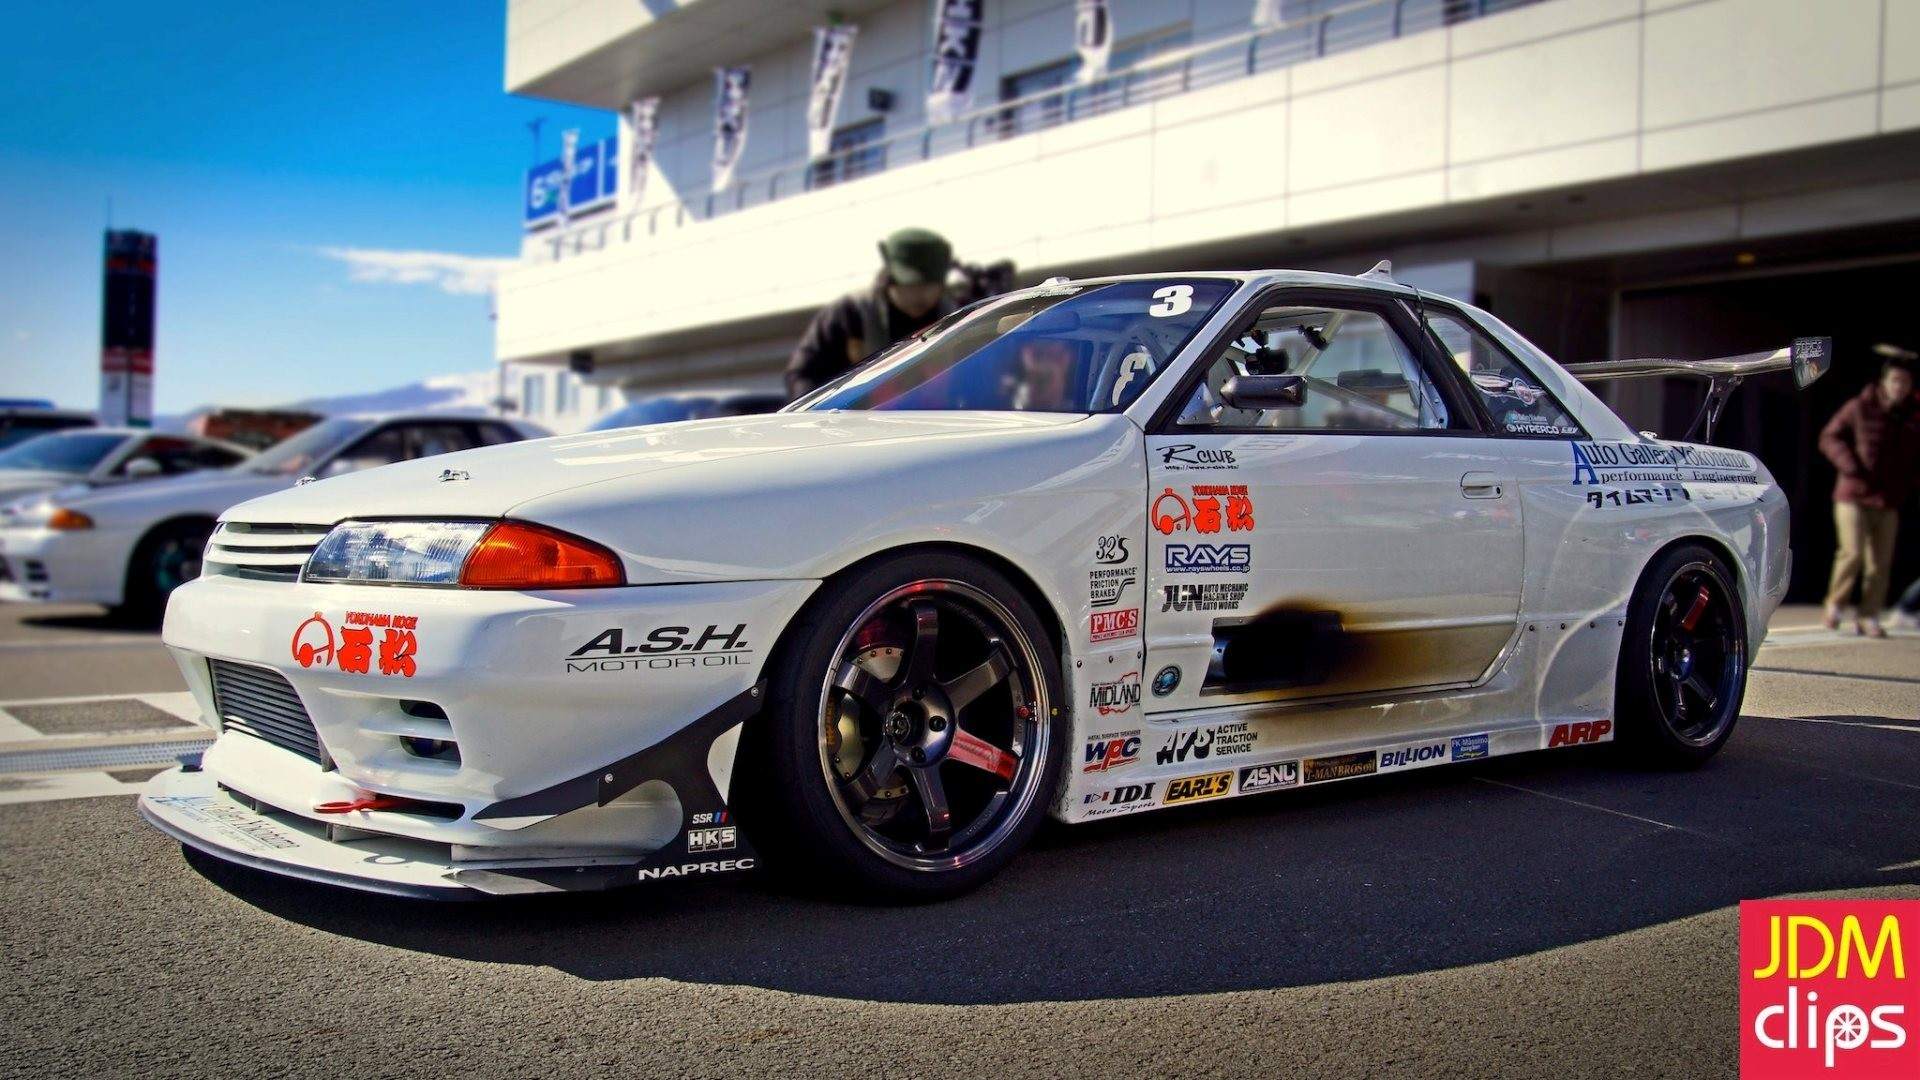 Nissan Skyline GT R R 32, Nissan Skyline, Nissan GT R R32, Nissan, JDM  Wallpapers HD / Desktop and Mobile Backgrounds